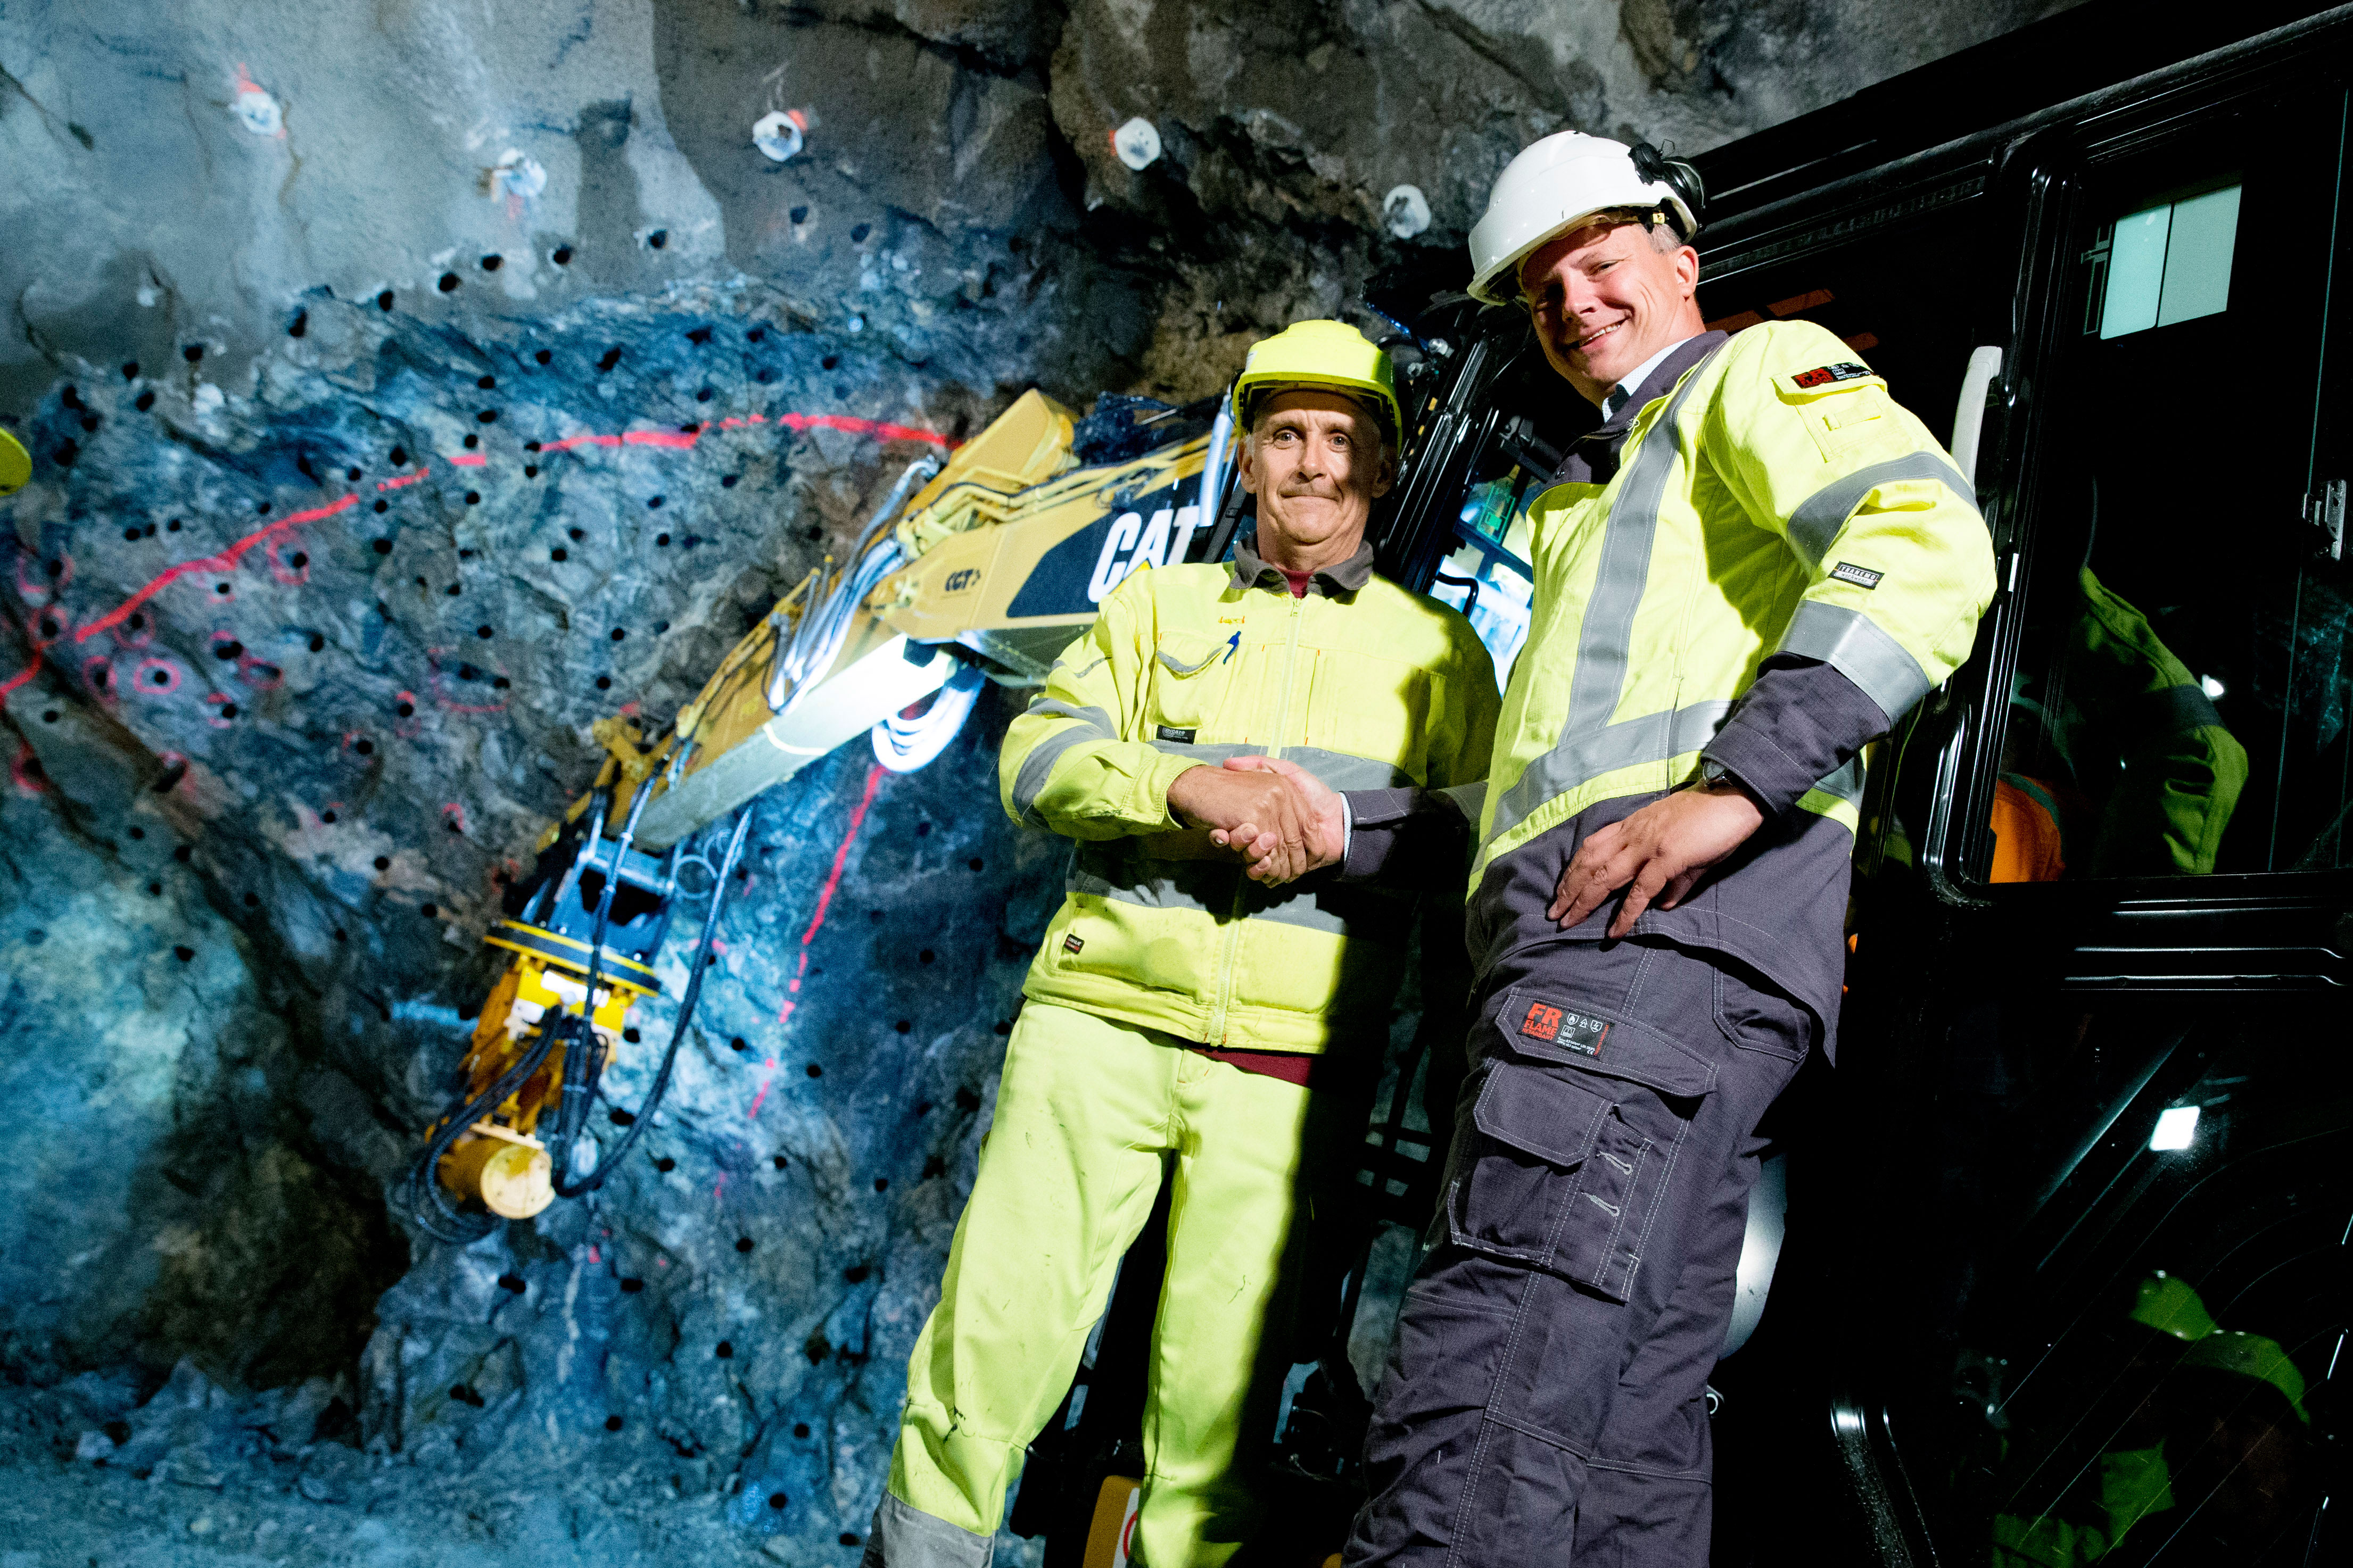 The start of the tunneling works for the Follo Line Project towards Oslo was celebrated with the Norwegian Minister of Transport and Communications Ketil Solvik-Olsen present. Here with Elca Romano, one of the specialists from entrepreneurCondotte. Photo: NTB Håkon Mosvold Larsen